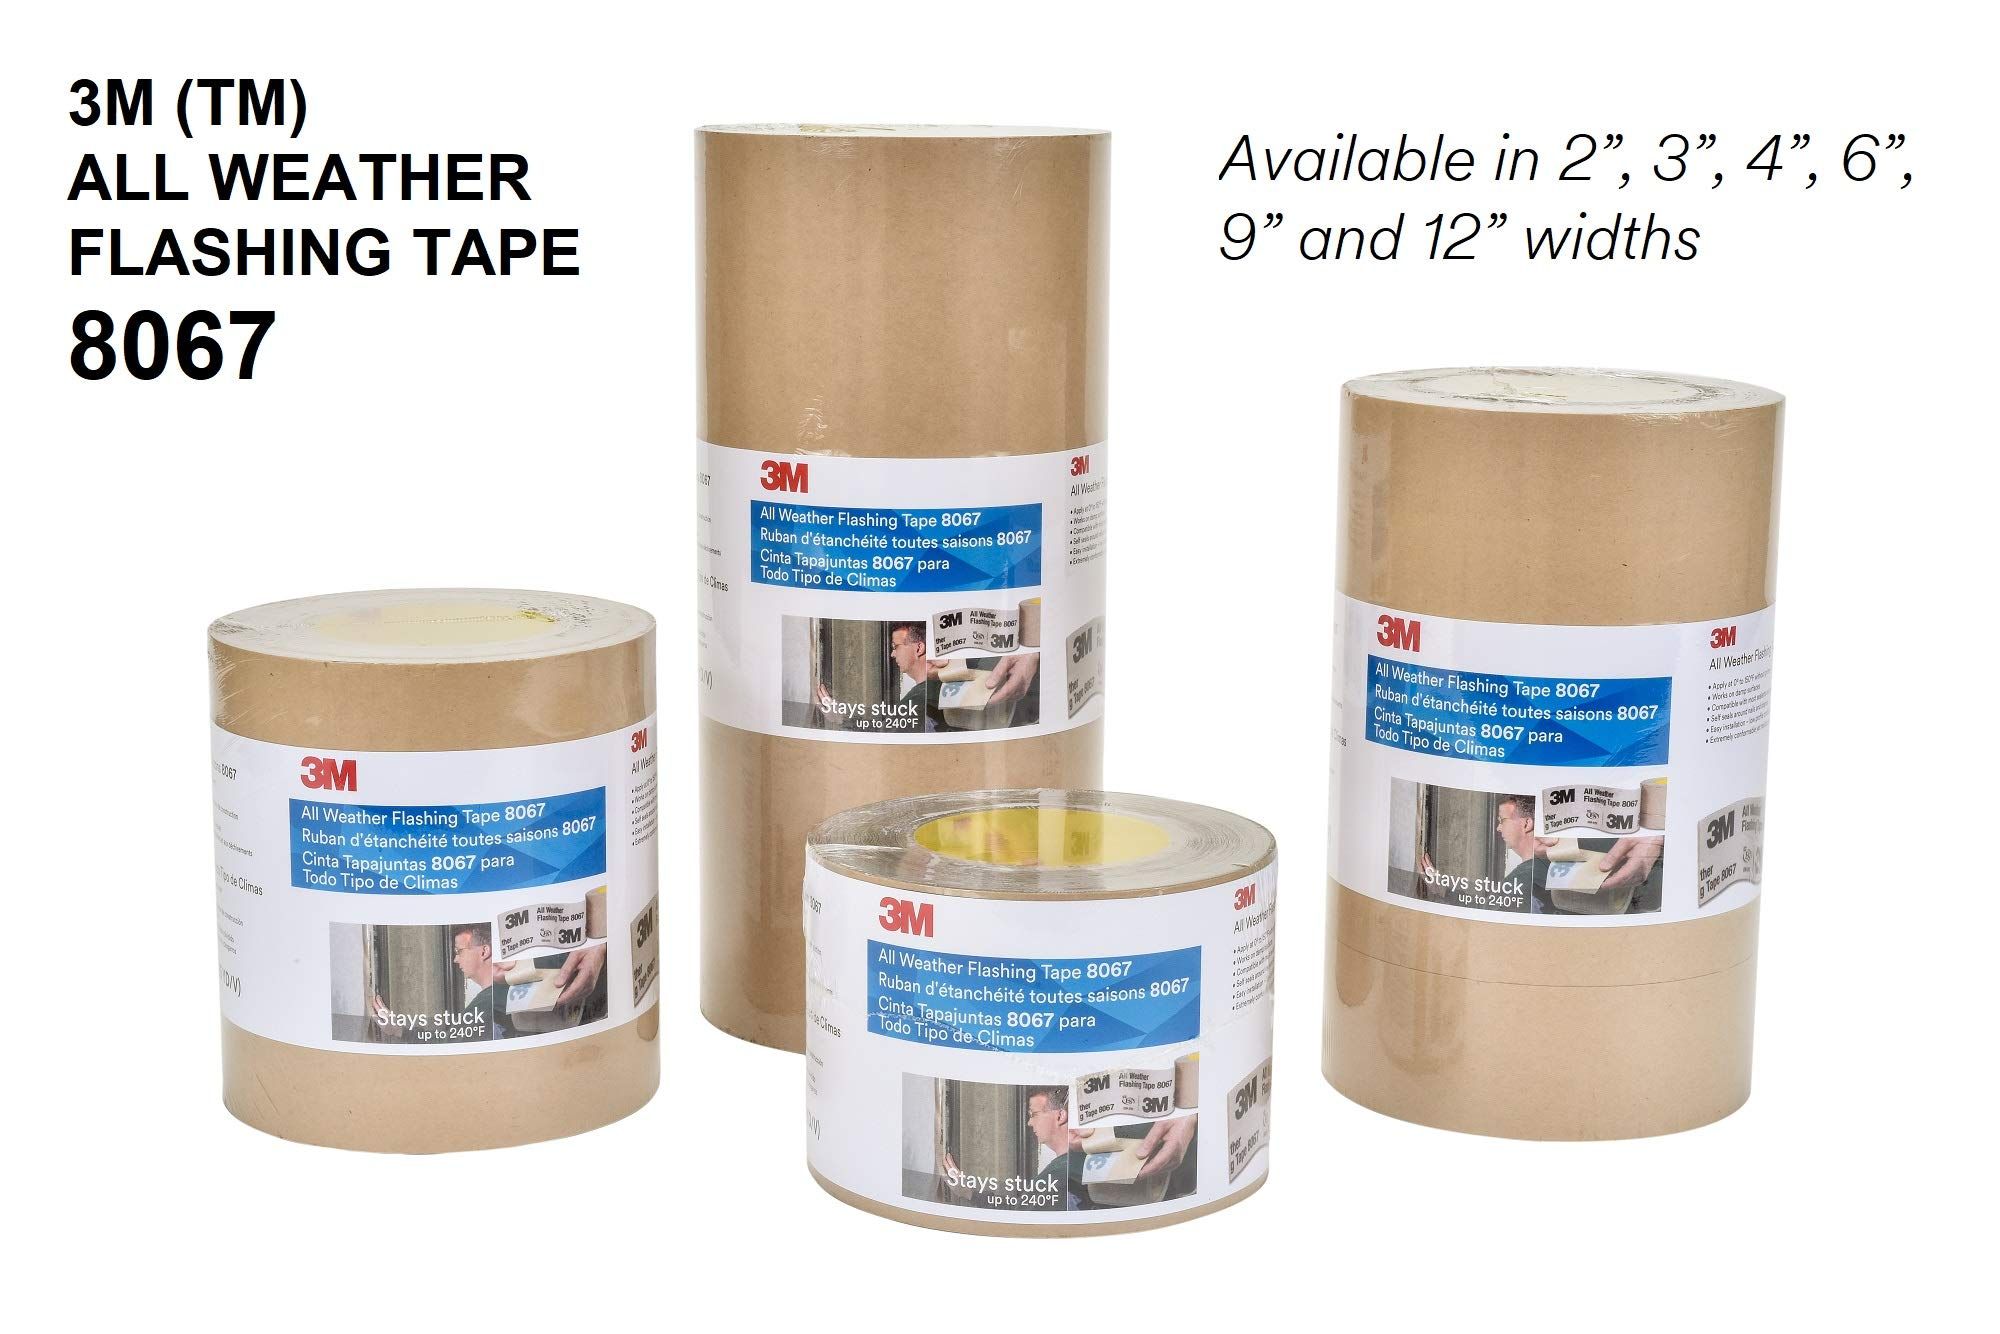 3M All Weather Flashing Tape 8067 Tan, 12 in x 75 ft Slit Liner (1 roll) by 3M (Image #4)